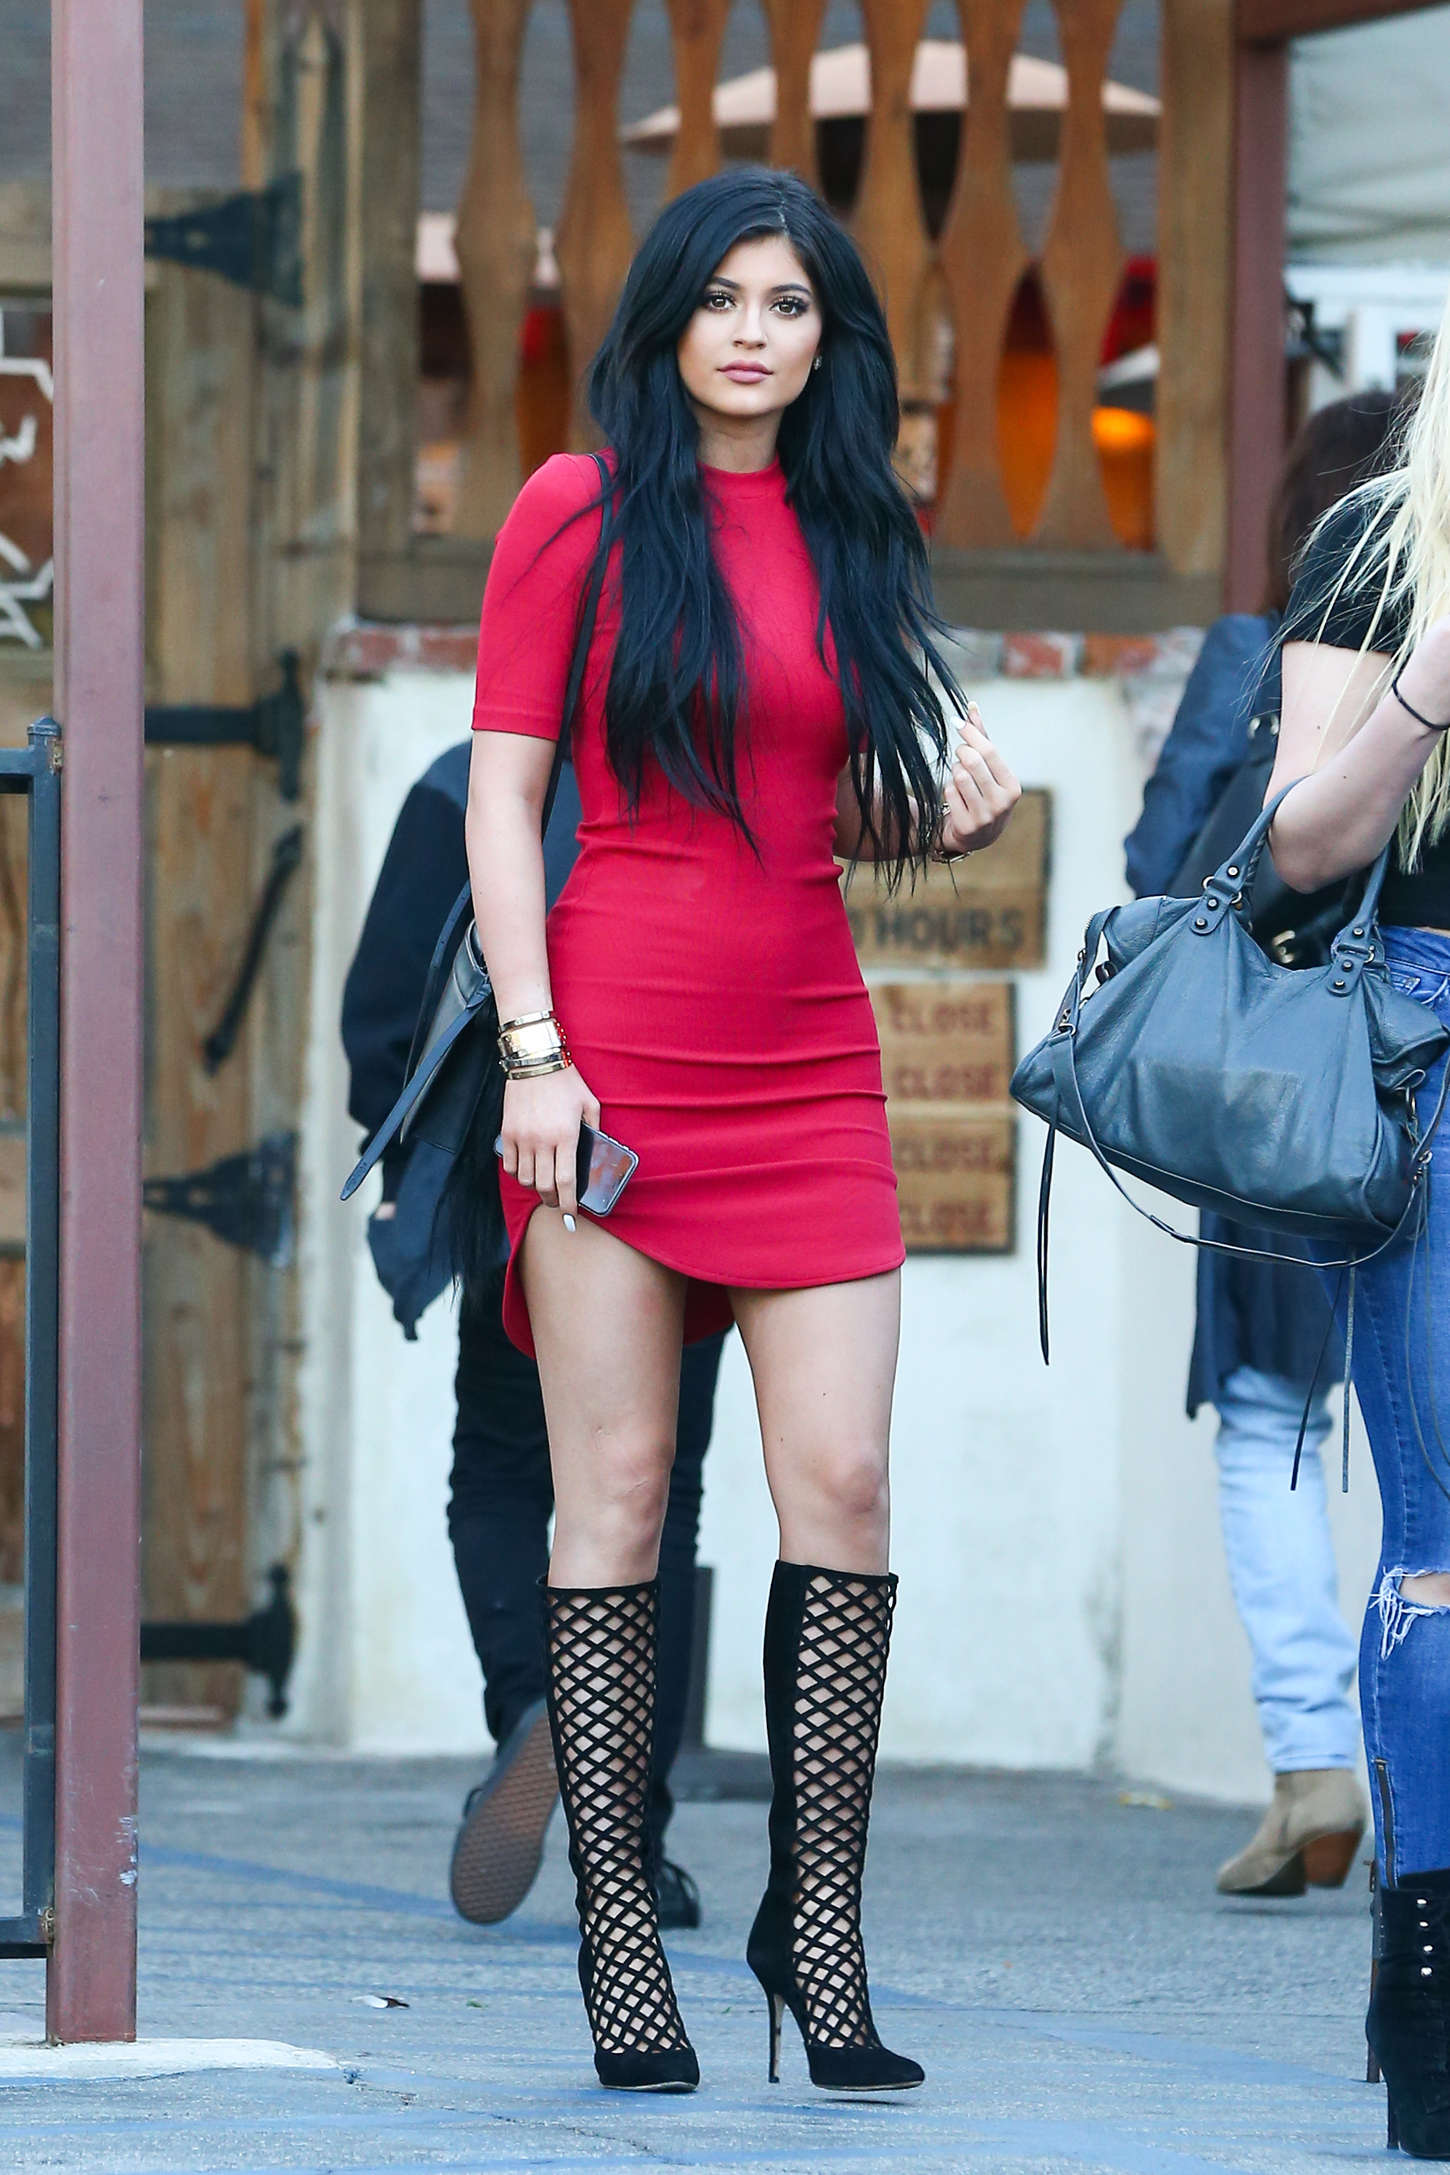 Kylie Jenner In Red Mini Dress 27 Gotceleb